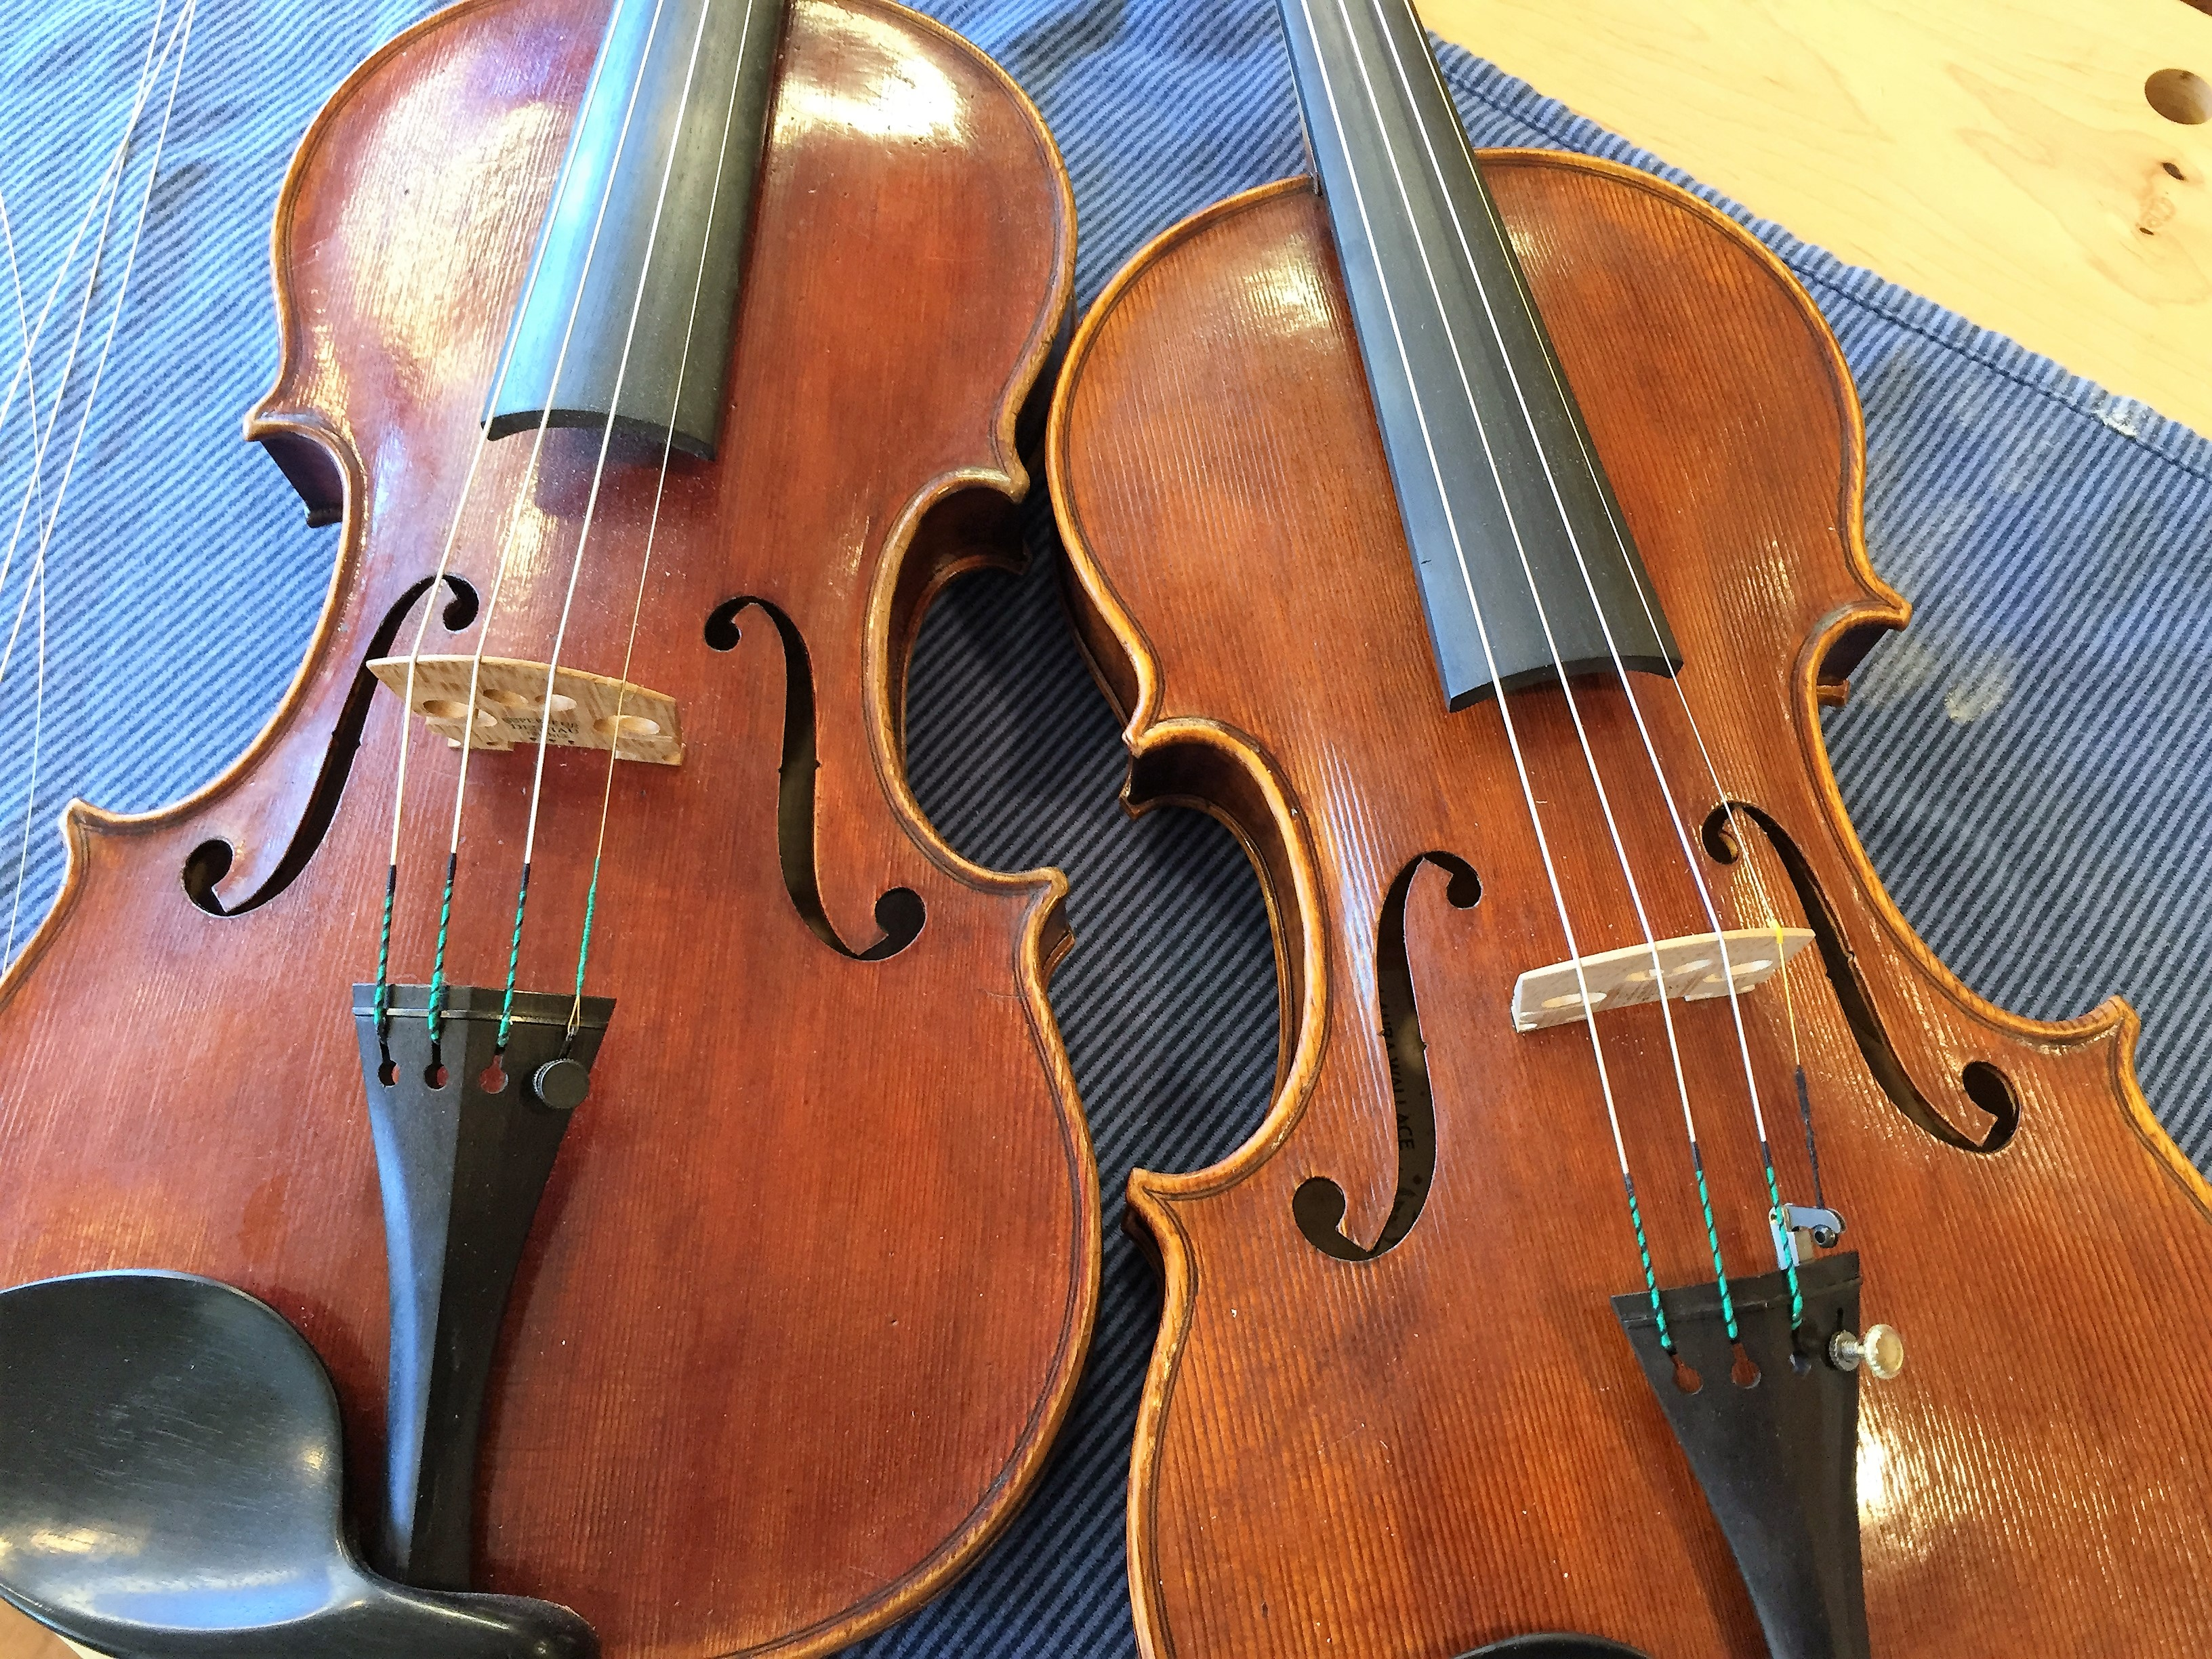 The twins: both build on a Strad Huberman model.